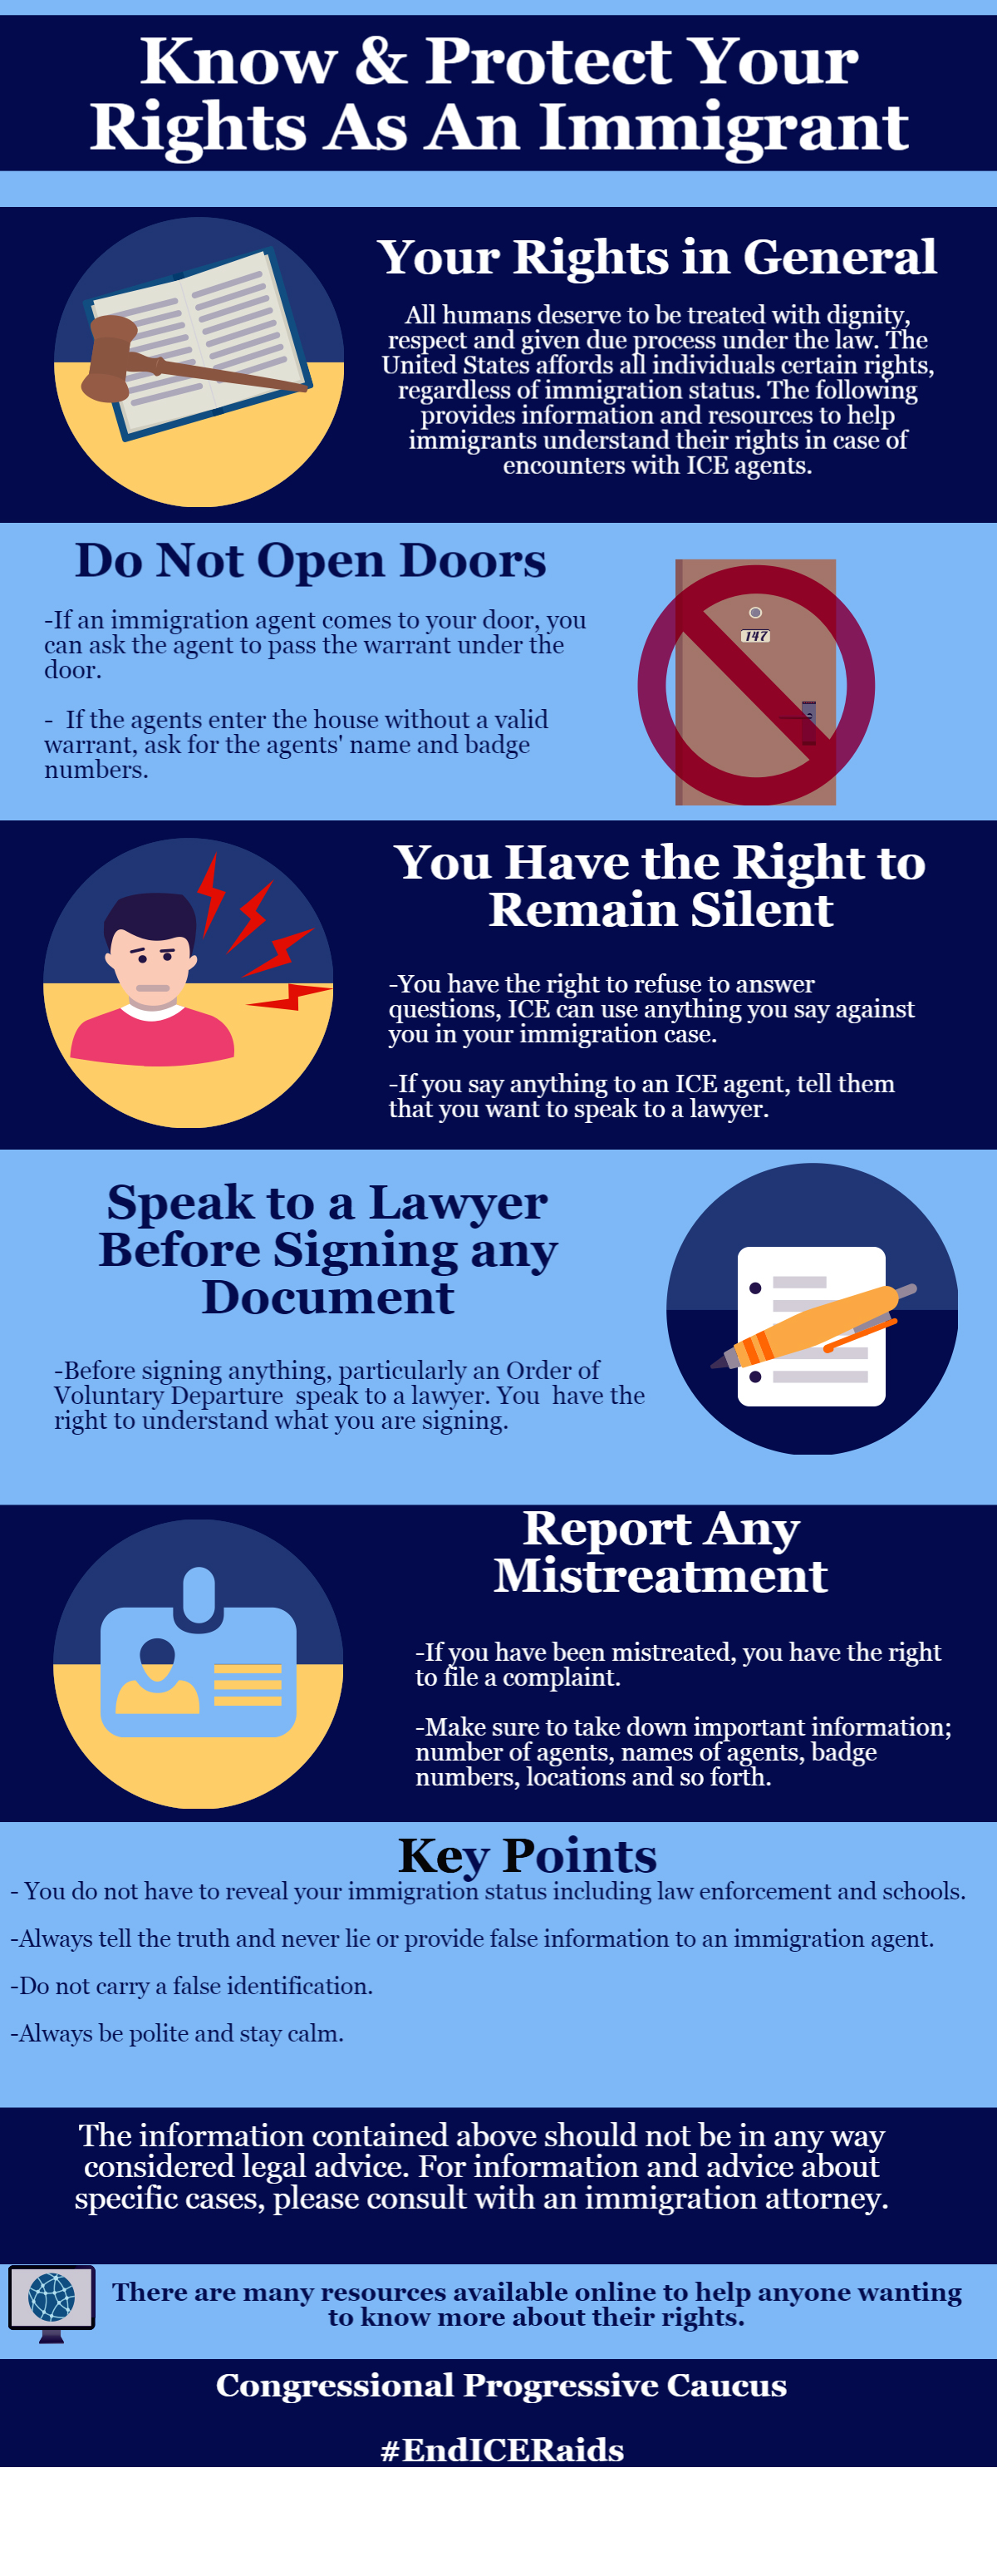 Know & Protect Your Rights As An Immigrant